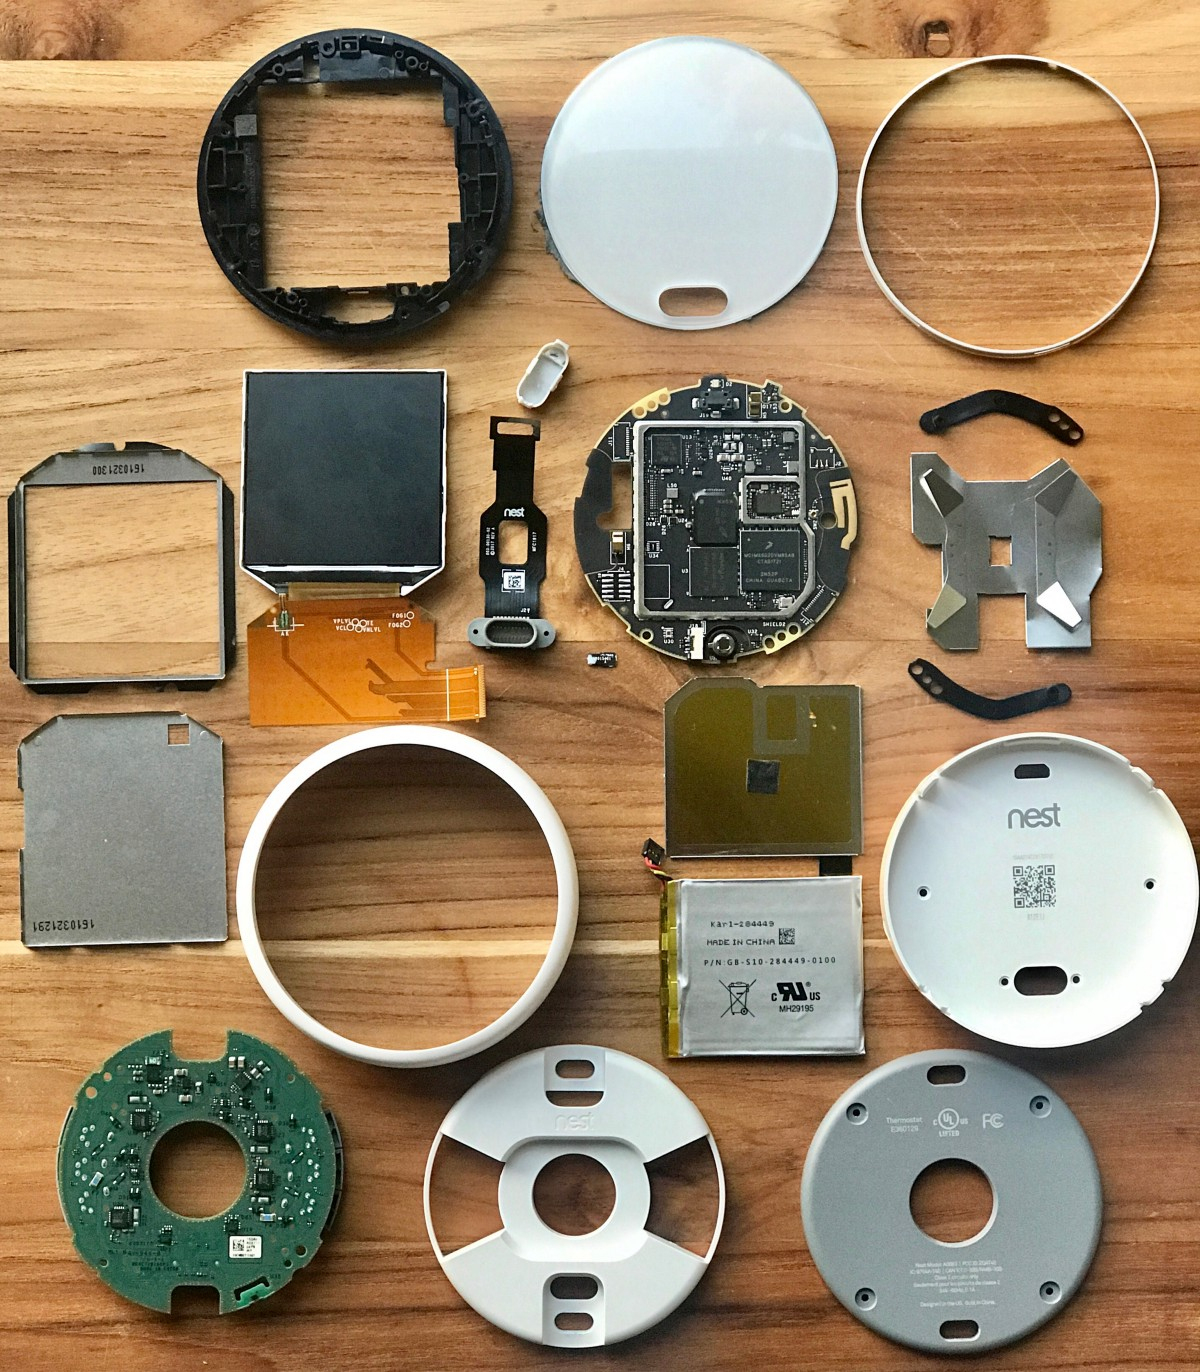 Nest Thermostat E Teardown, And On Making Beautiful Devices For The Home - Nest Wiring Diagram Us Fl